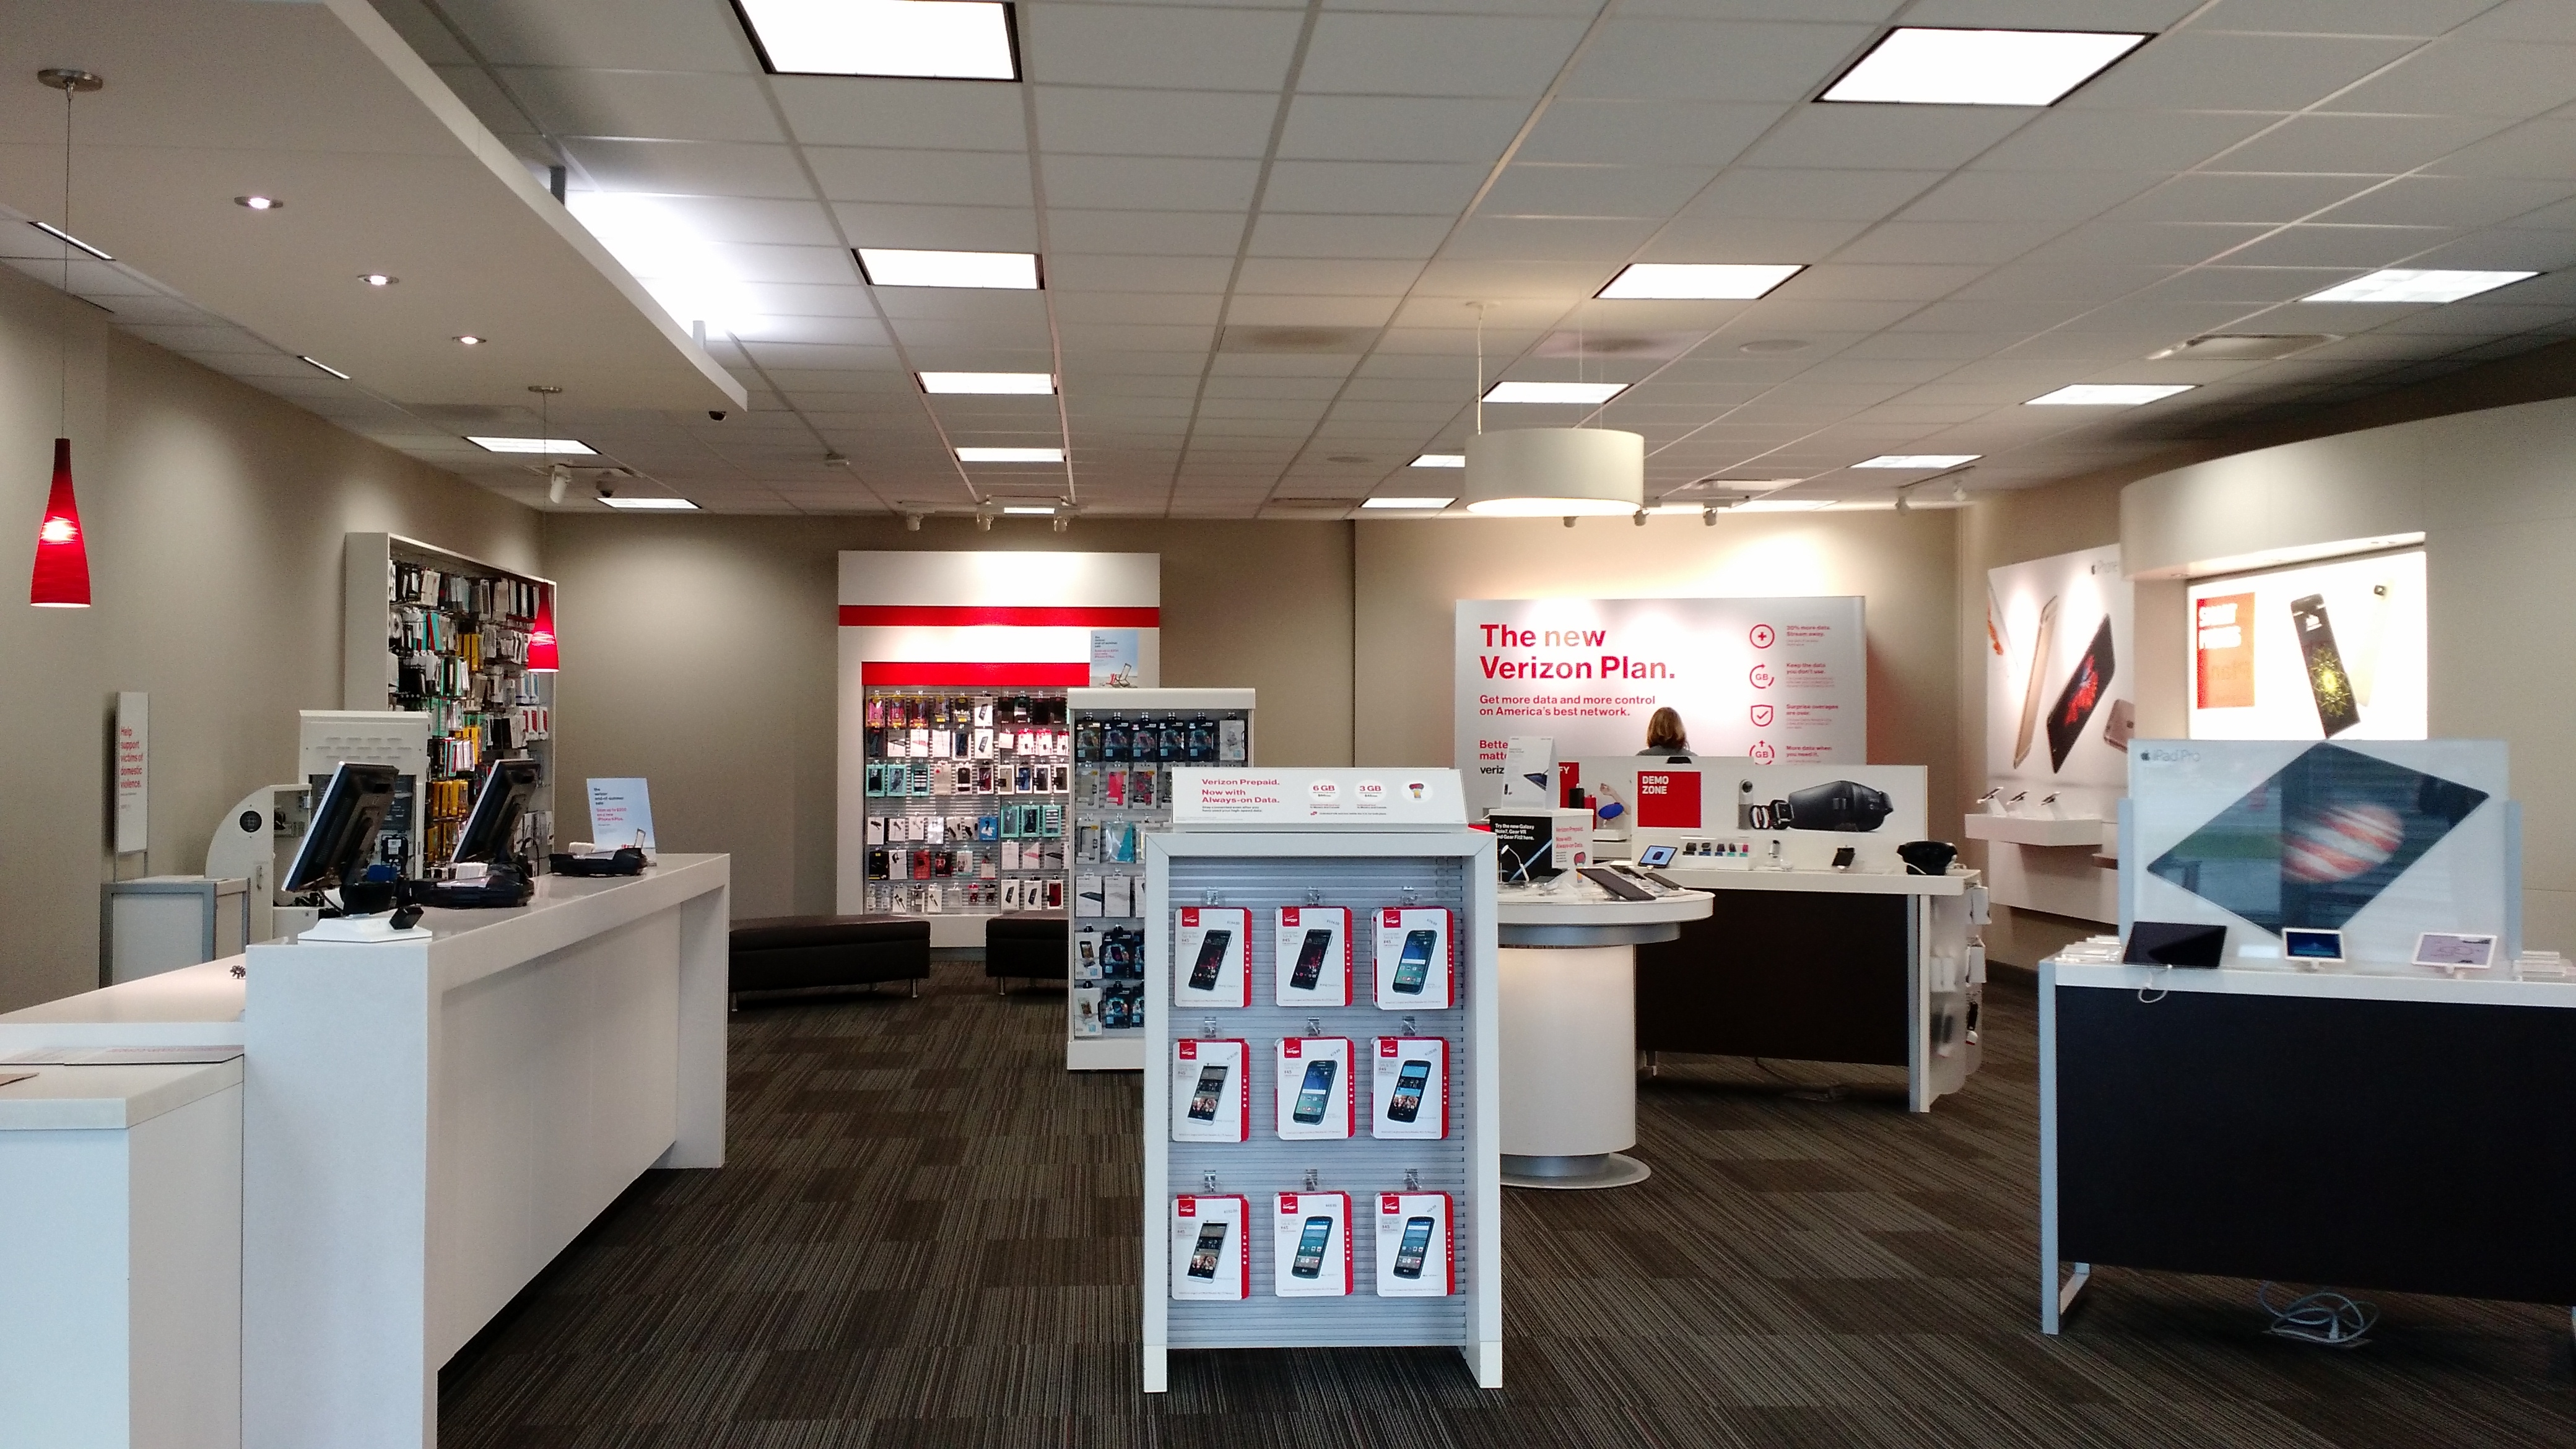 Verizon image 1